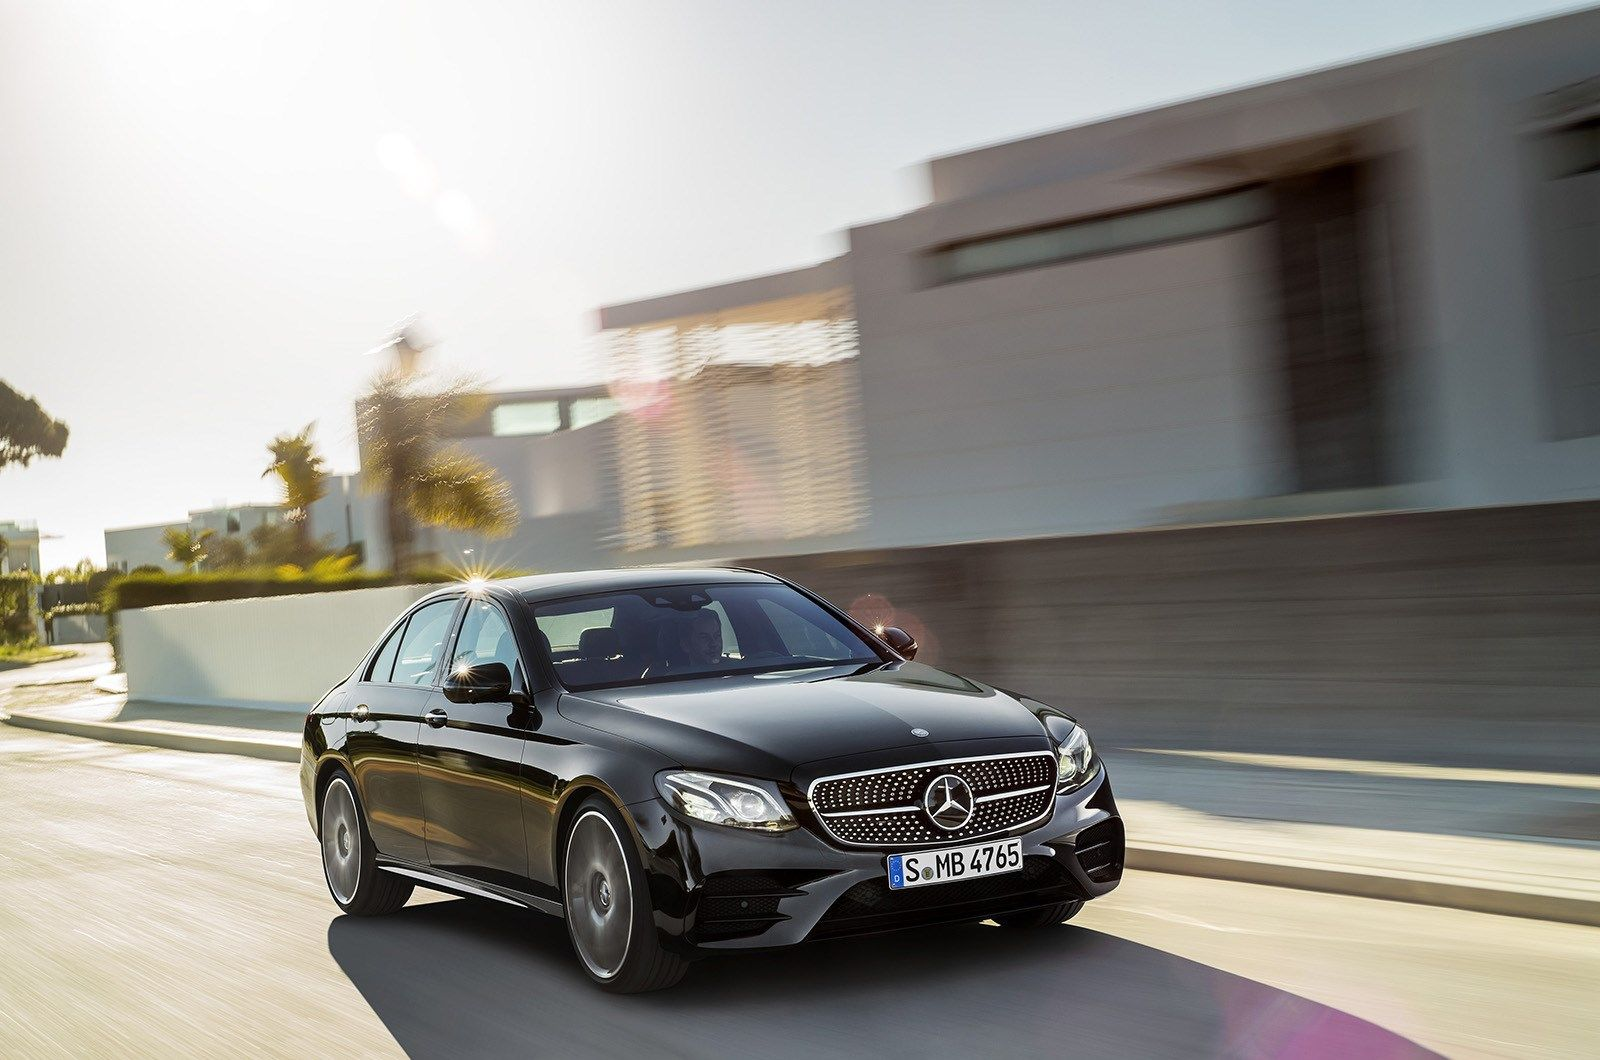 High Quality mercedes amg e 43 4matic picture by Clarissa MacDonald (2016-01-06)